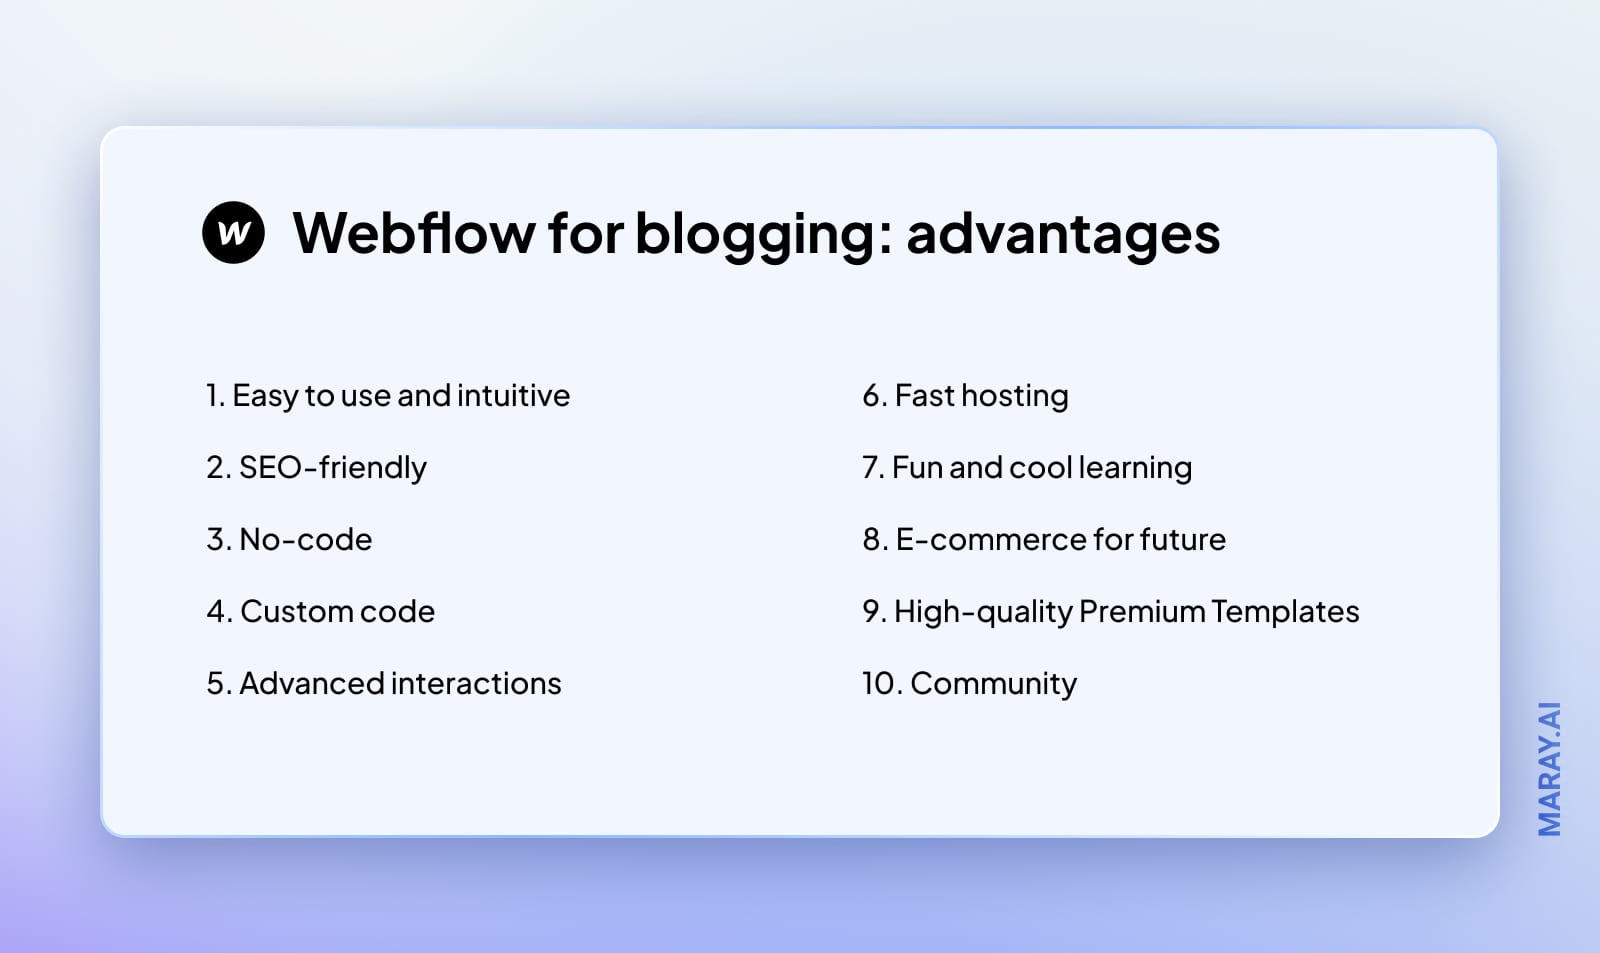 Advantages of using Webflow for blogging.